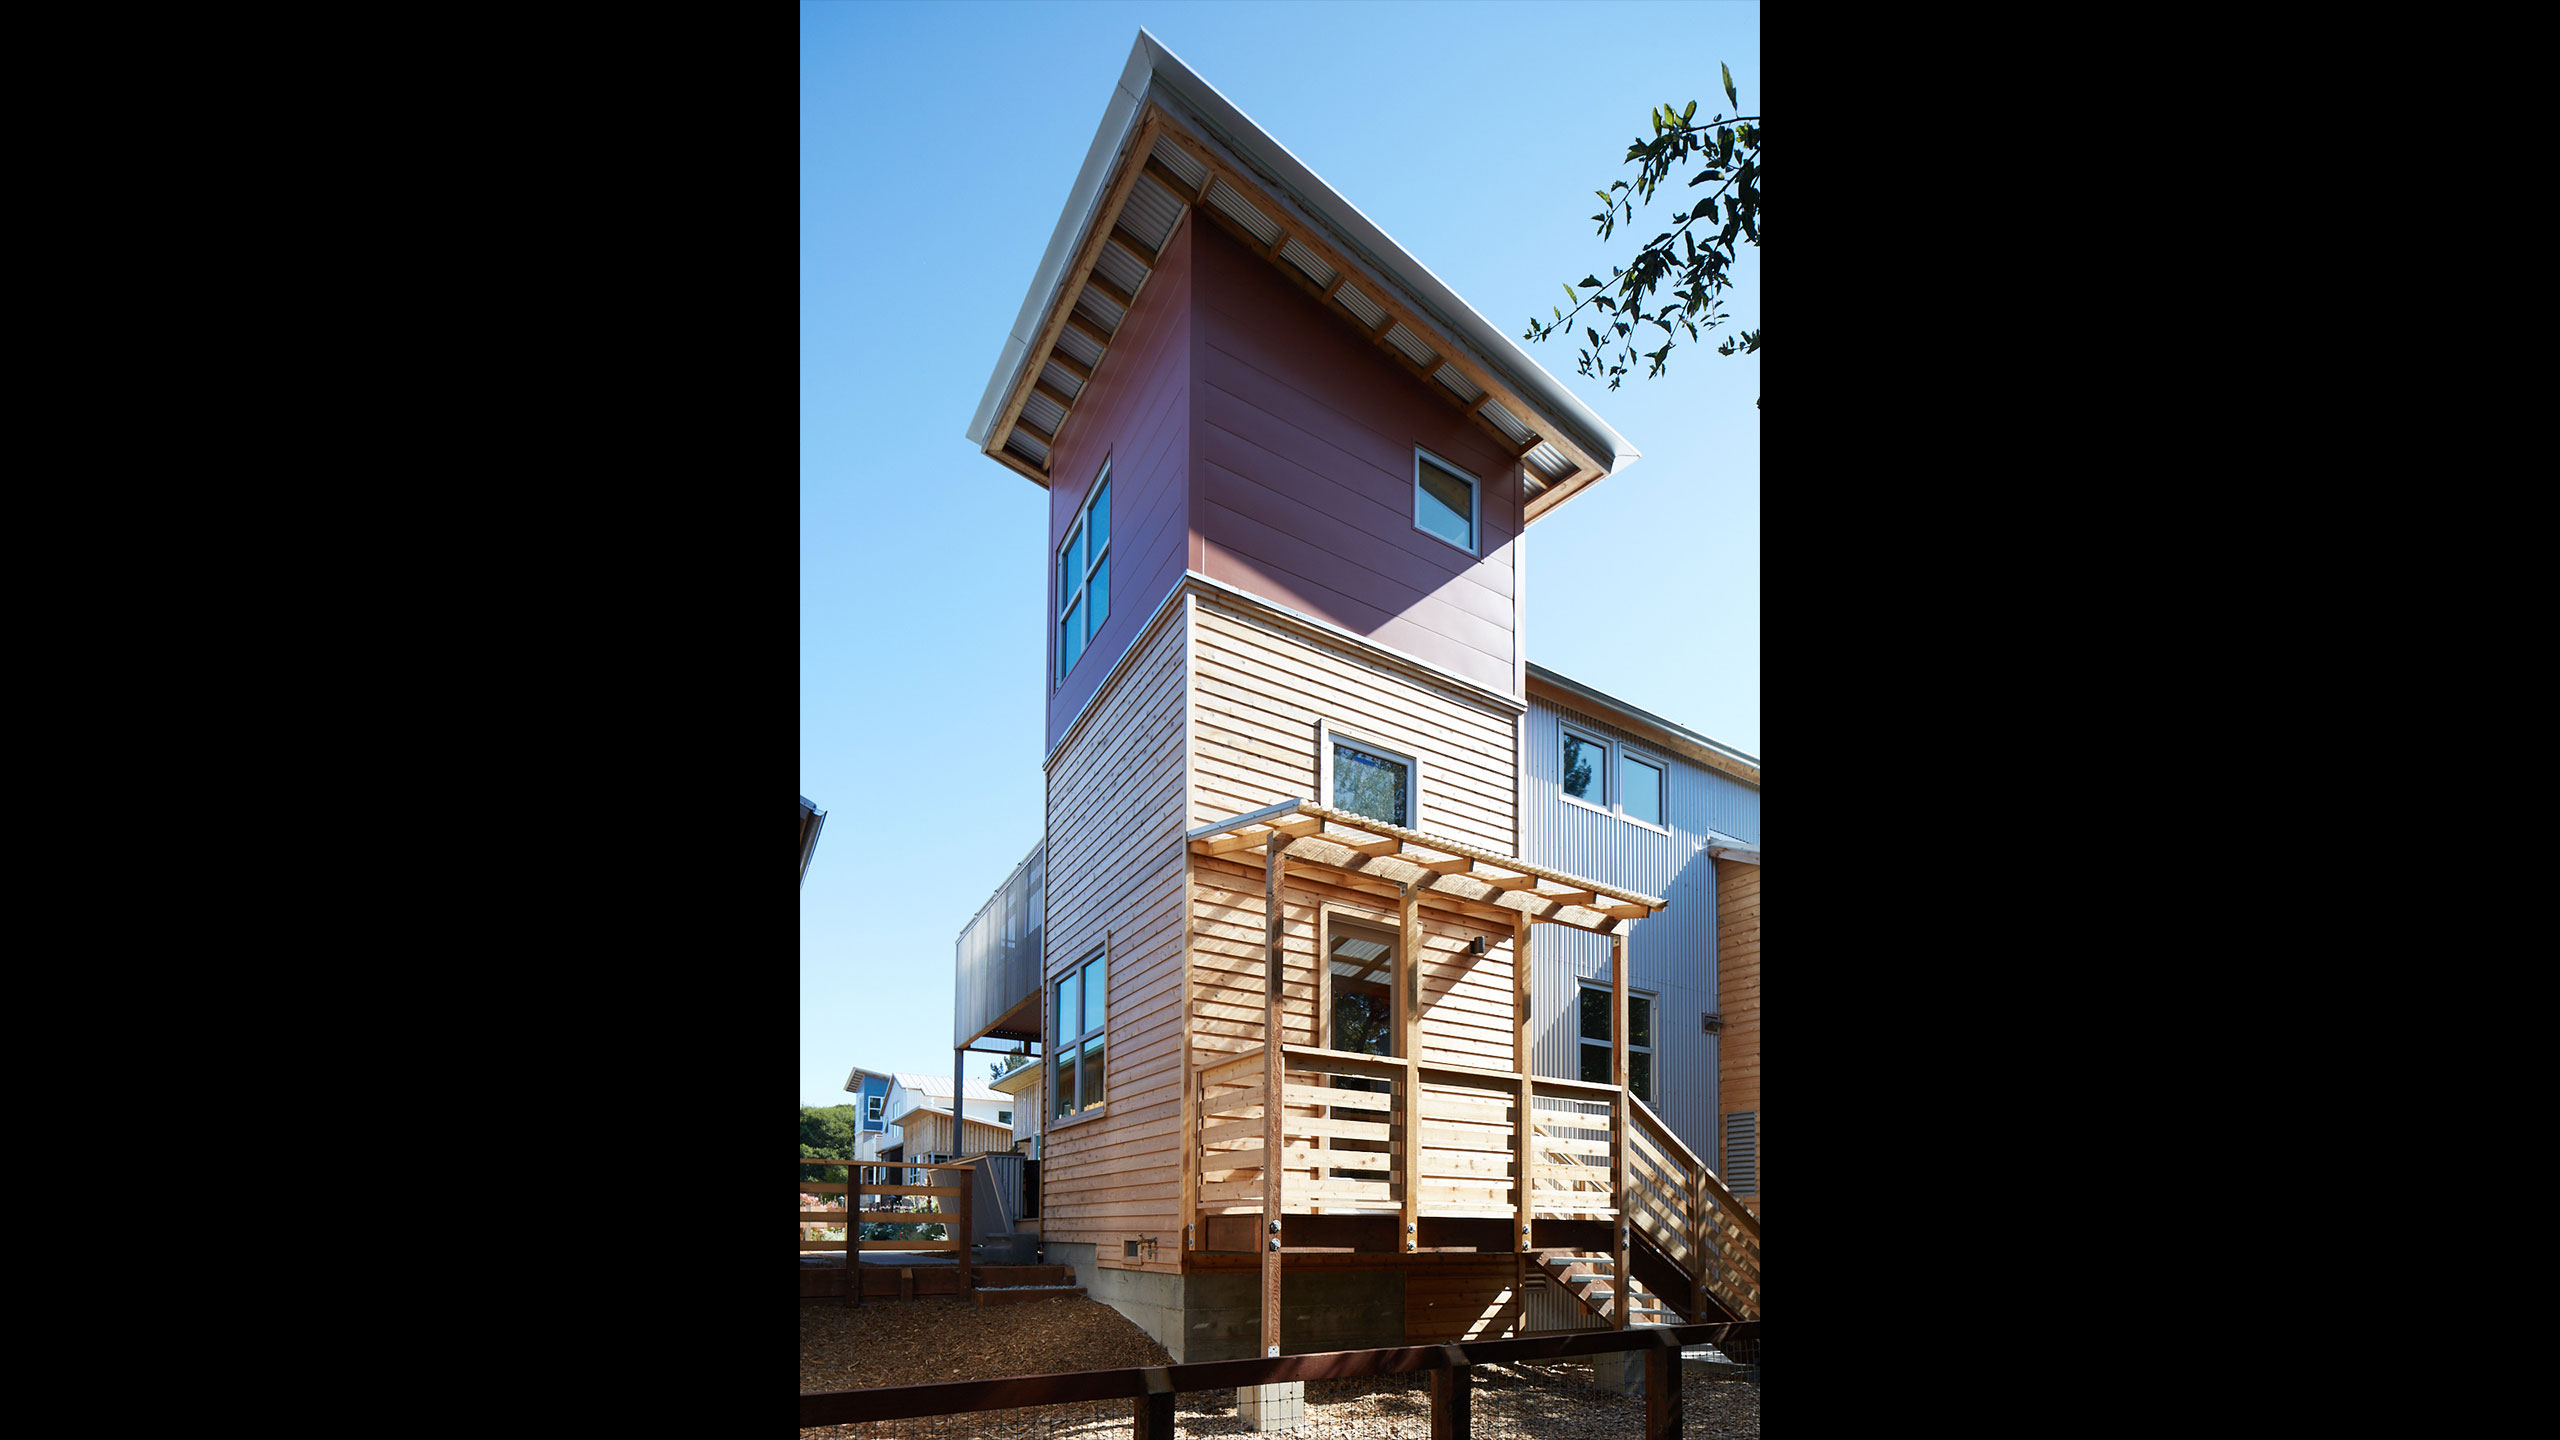 Sustainable-Architecture-Sonoma-County-Keller-Court-backside-of-houses